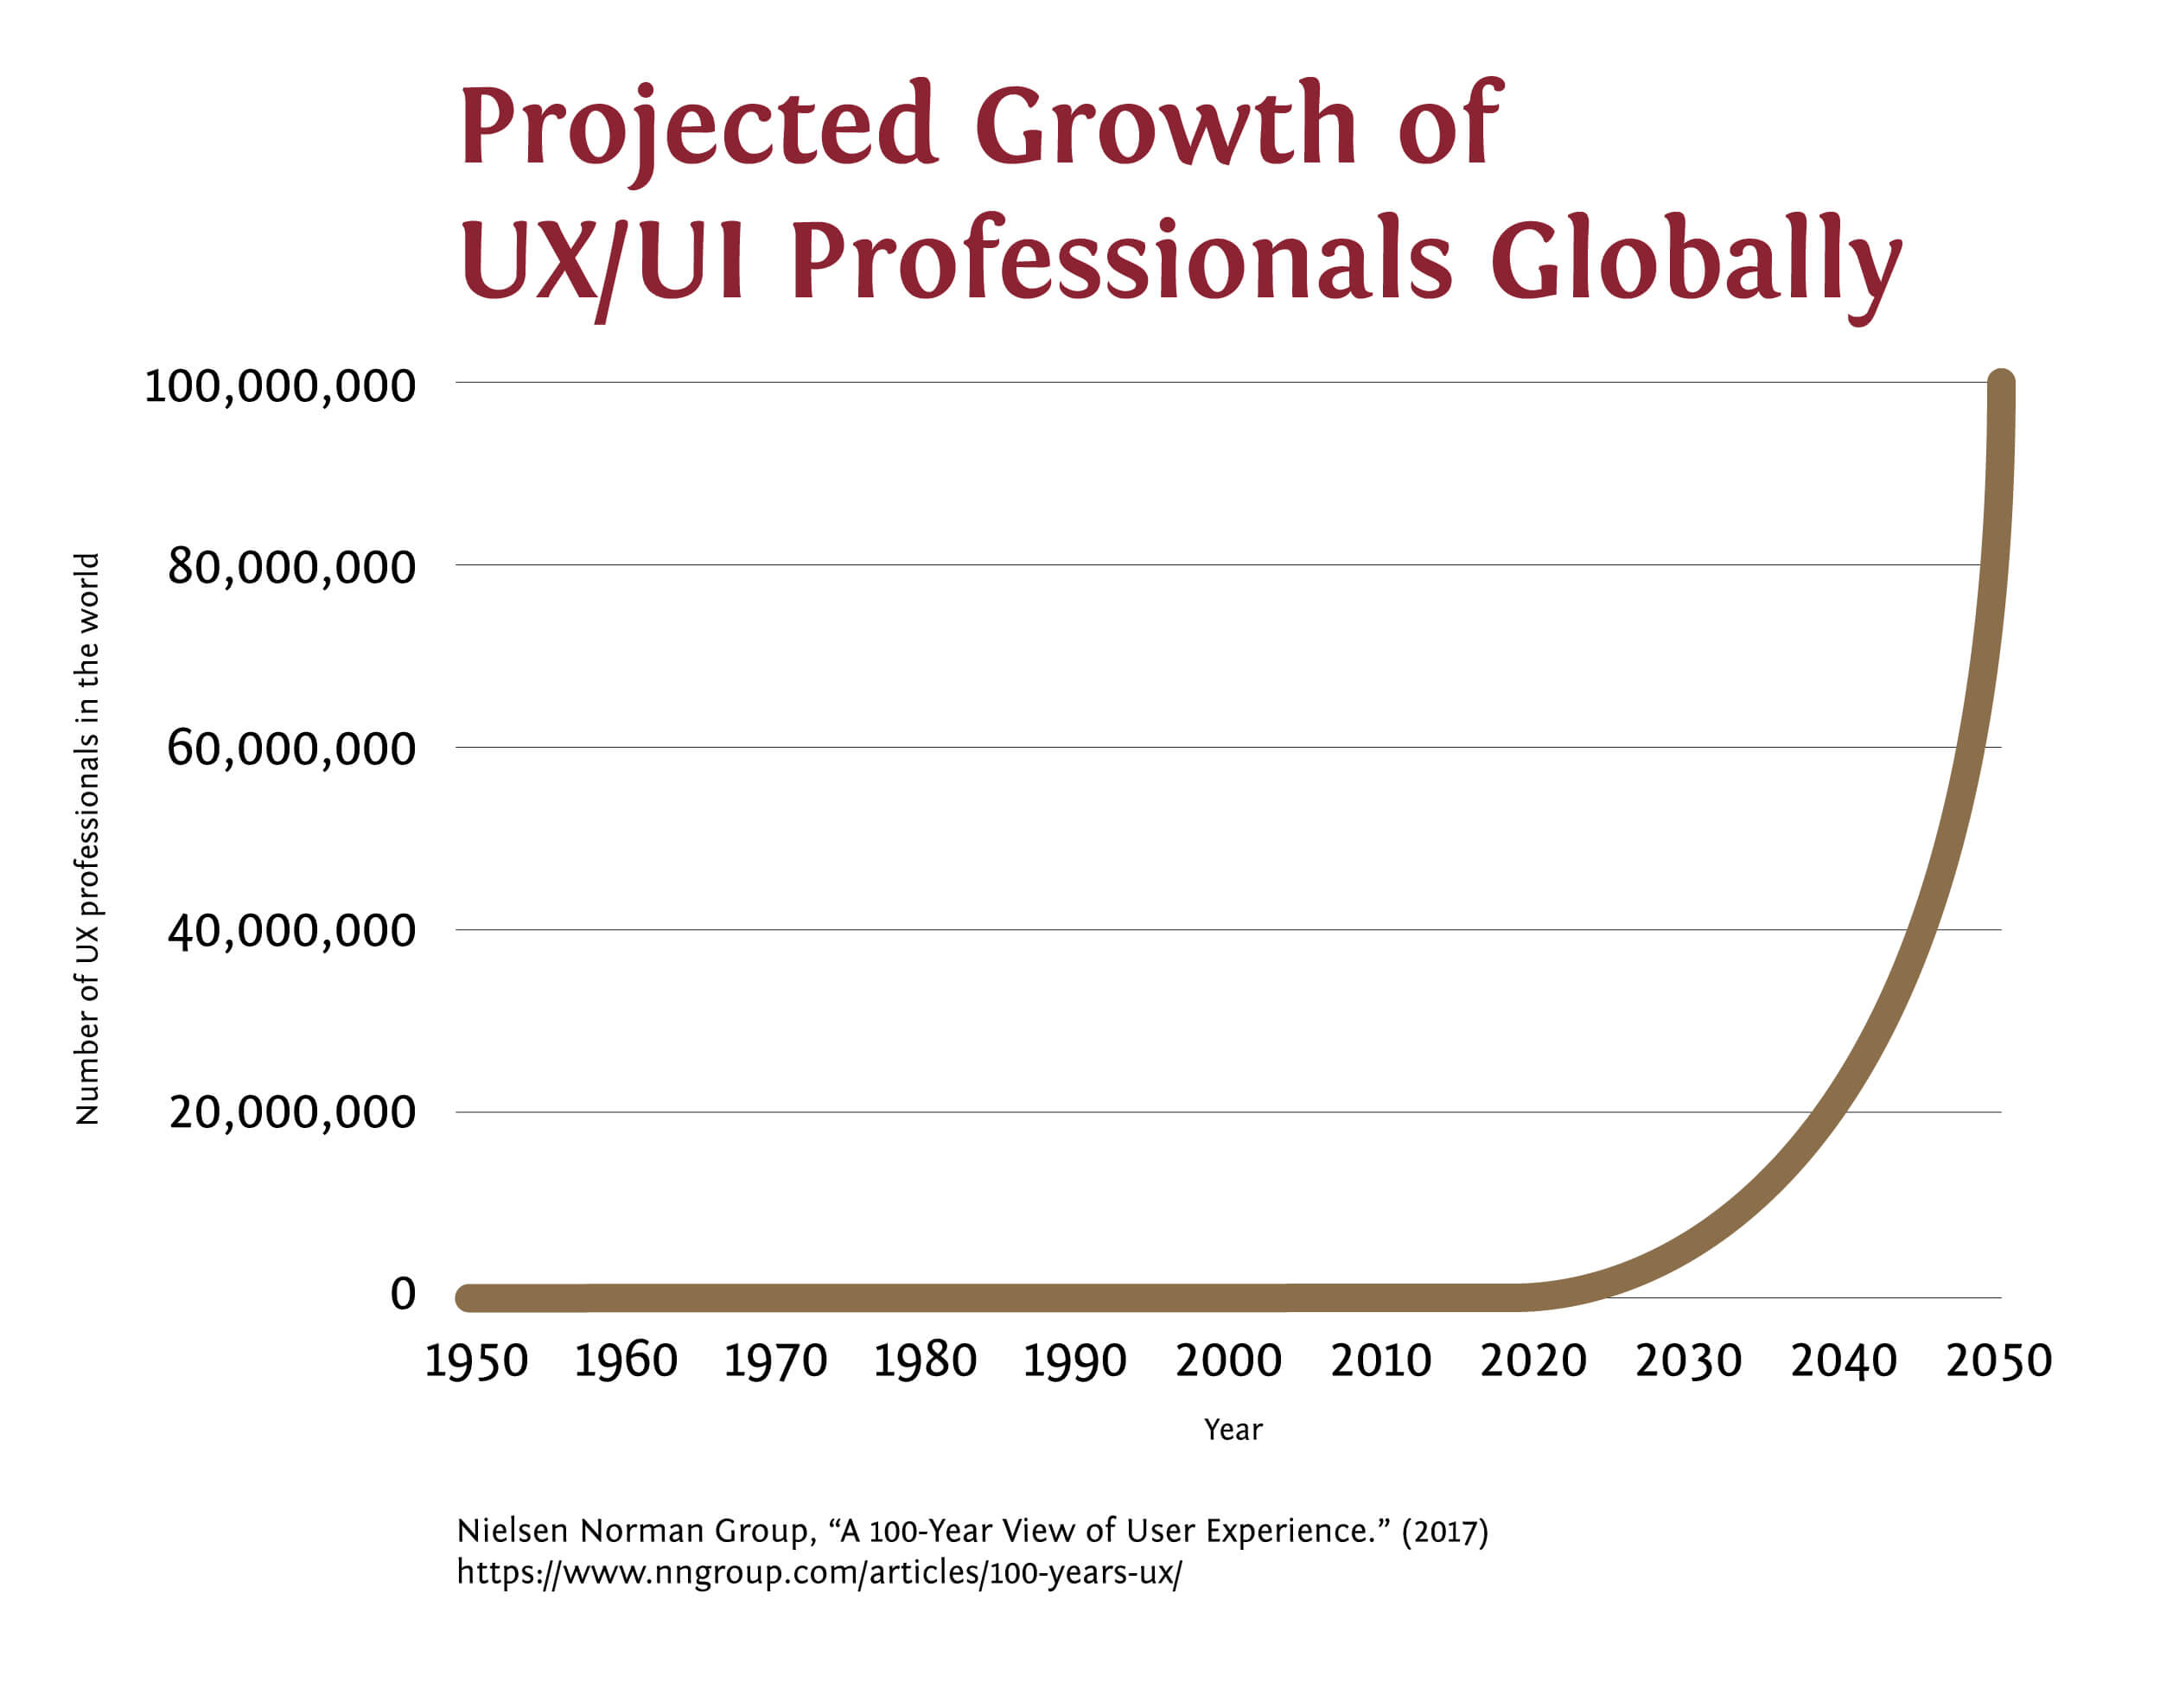 The projected number of UI and UX professionals globally